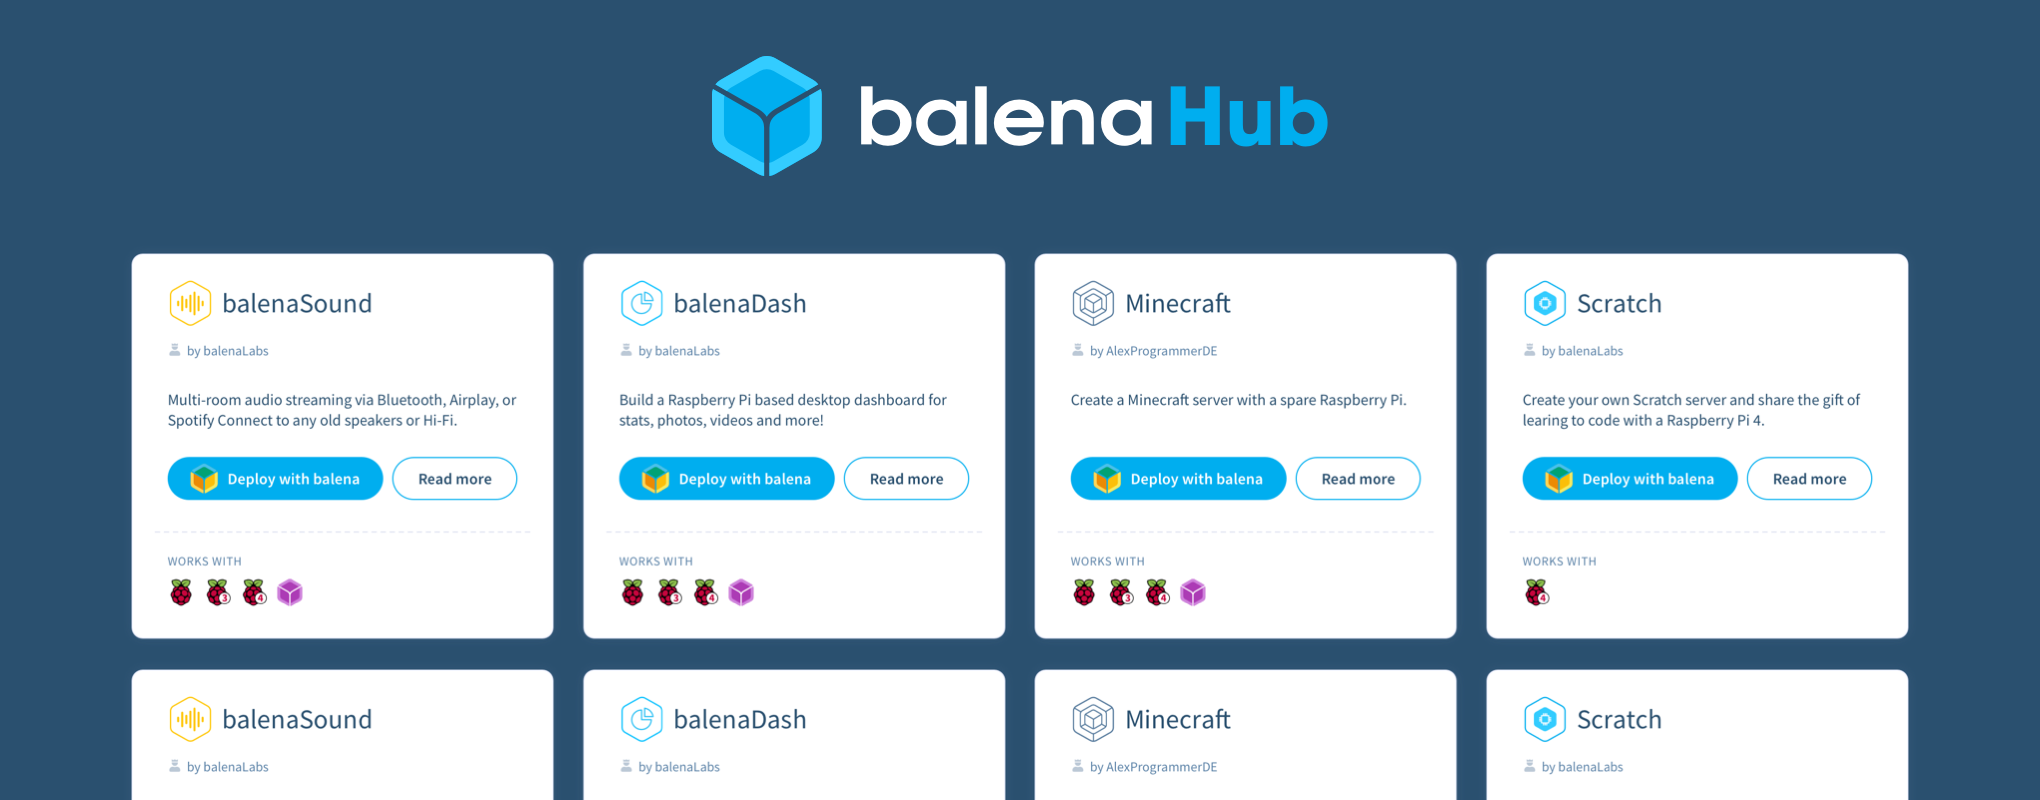 We're excited to announce balenaHub!